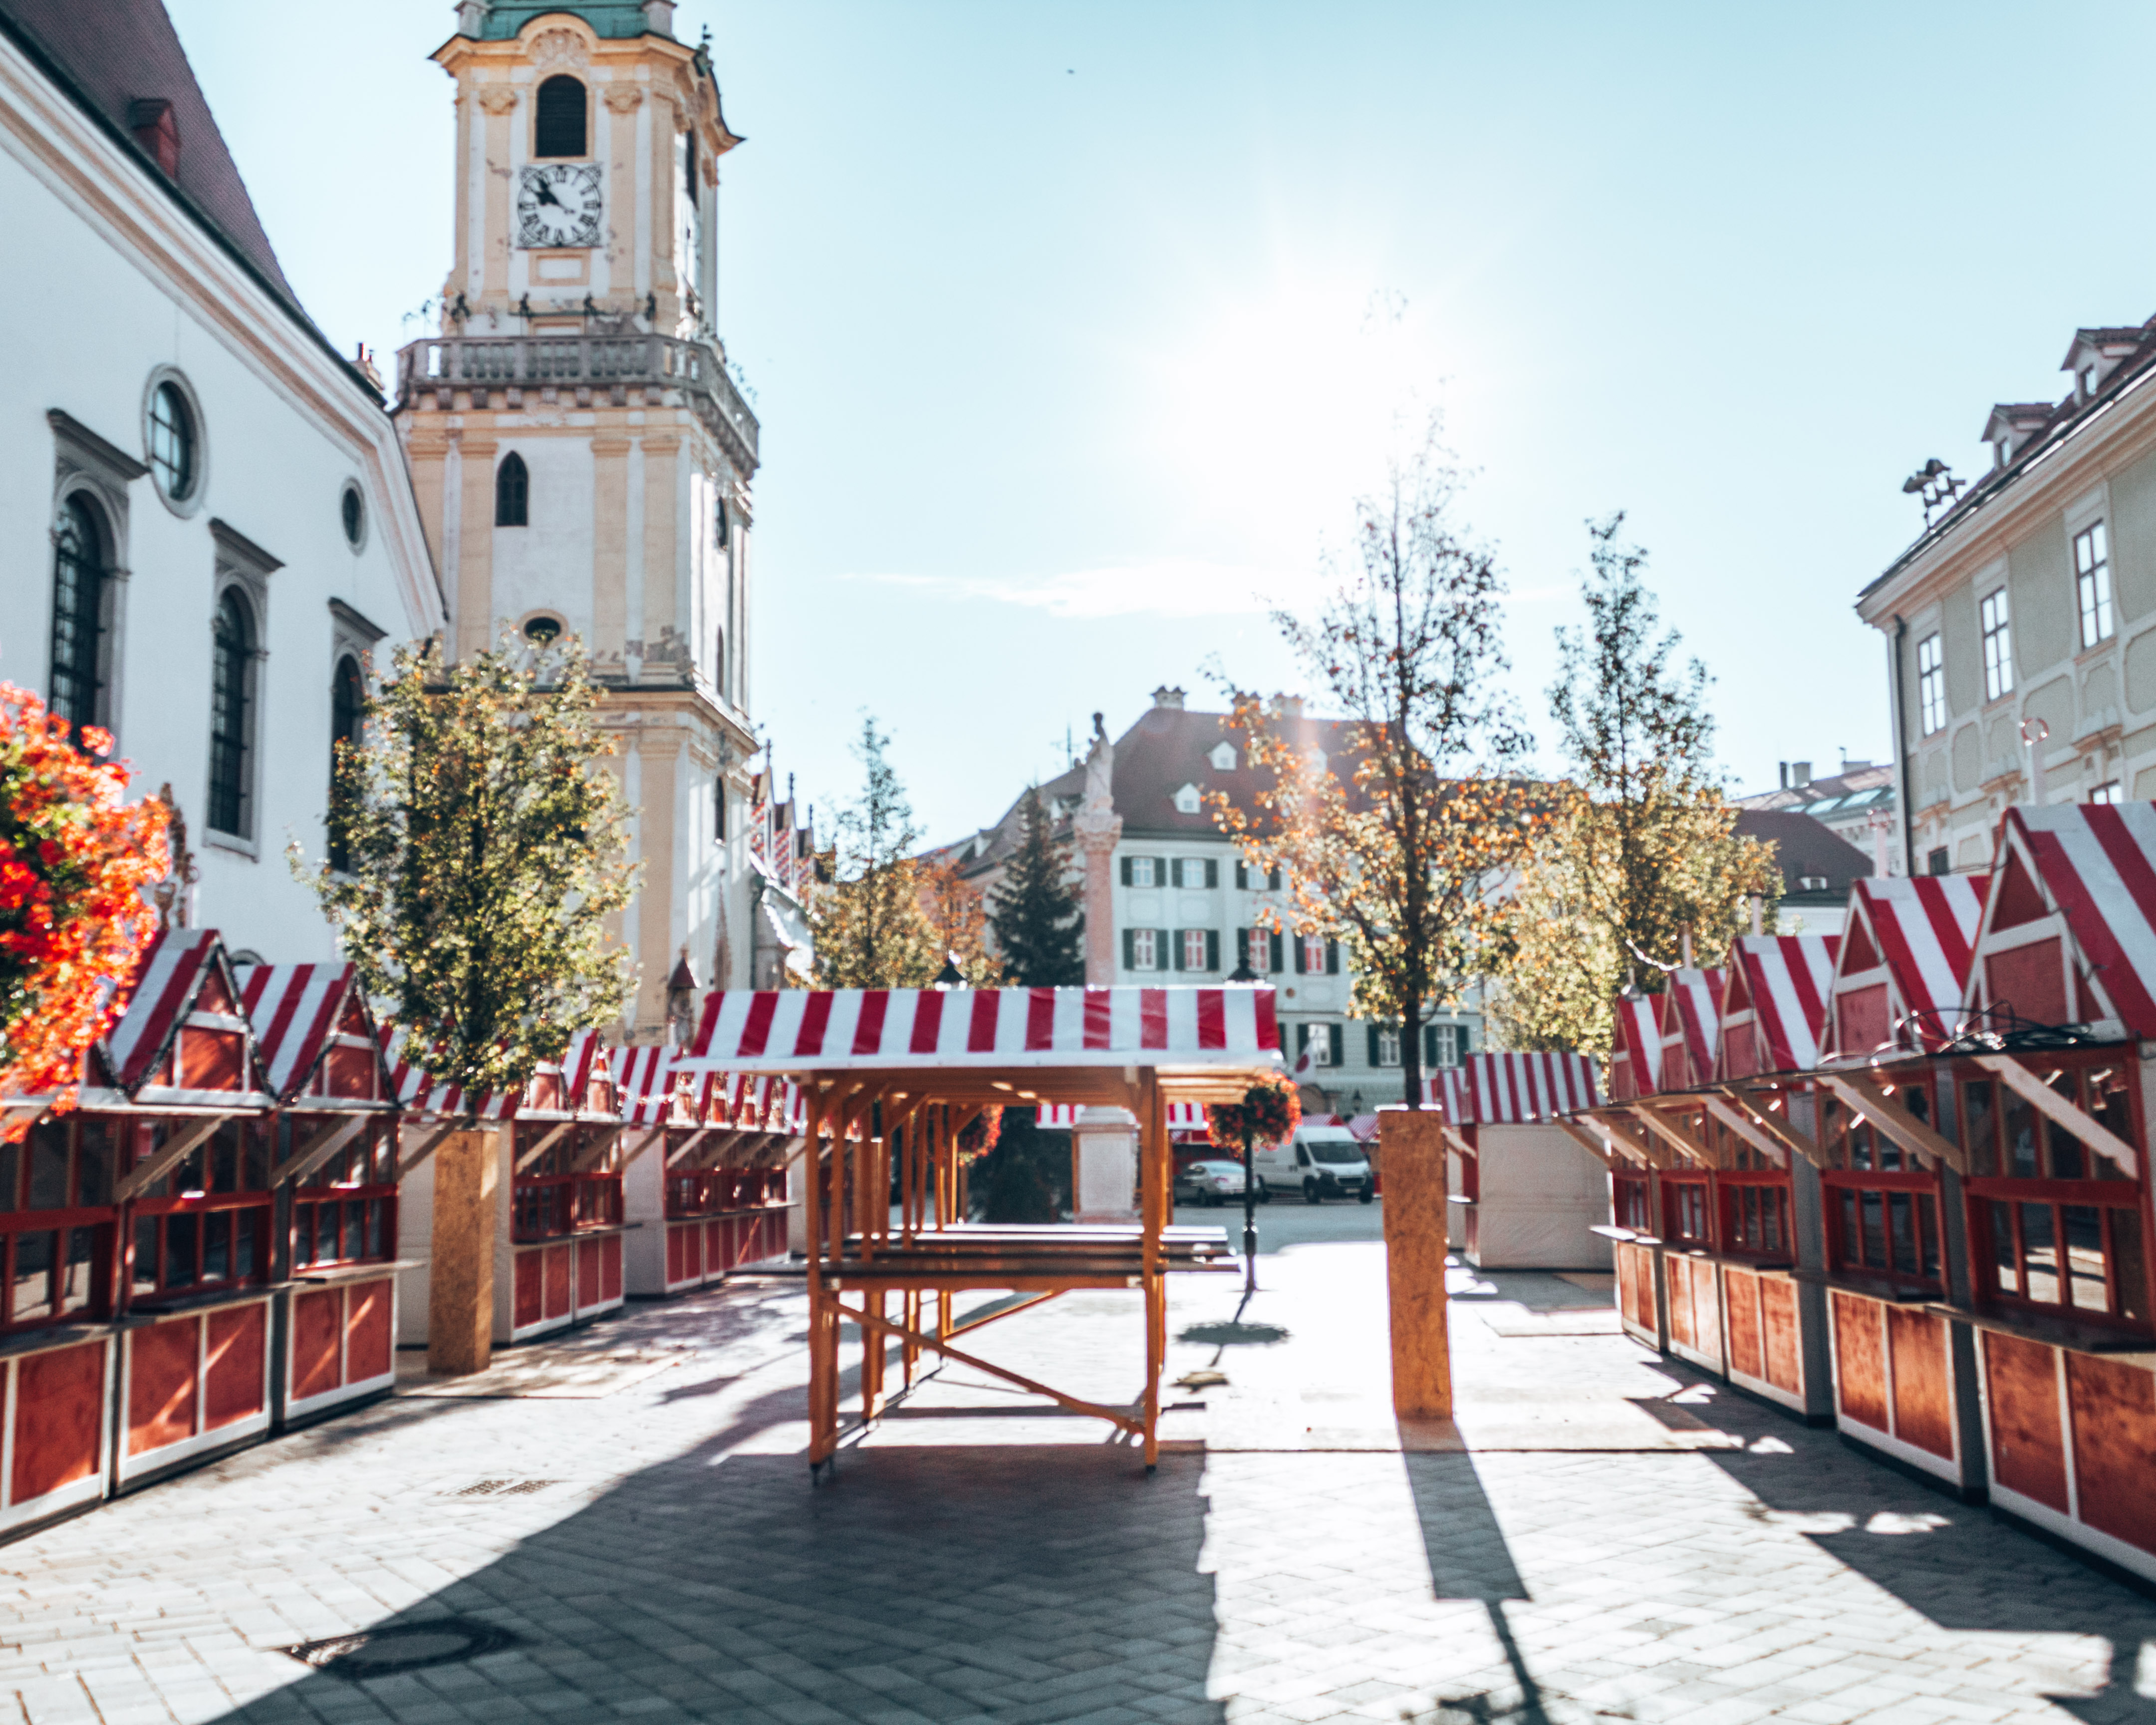 The Christmas markets being setup in the Old town of Bratislava, Slovakia